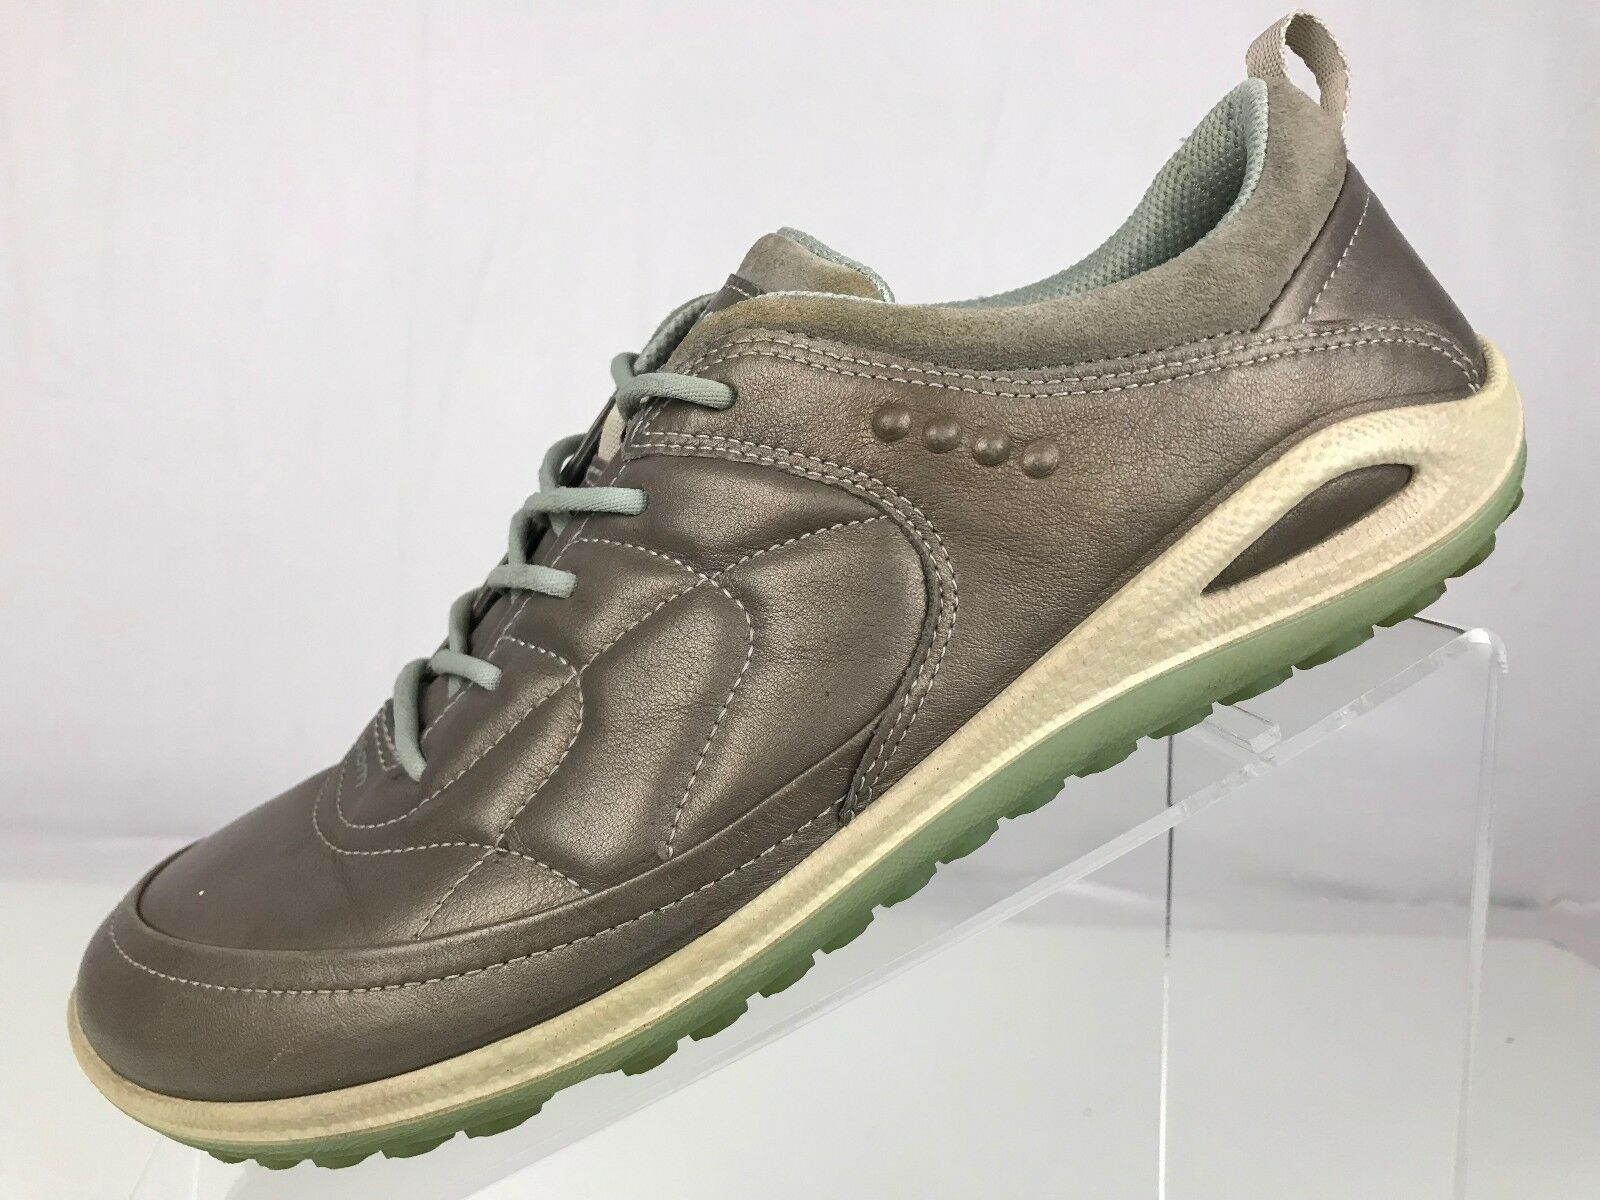 Ecco Biom Sneakers - Casual Walking Leather shoes Silver Women's 37 US 6 6.5